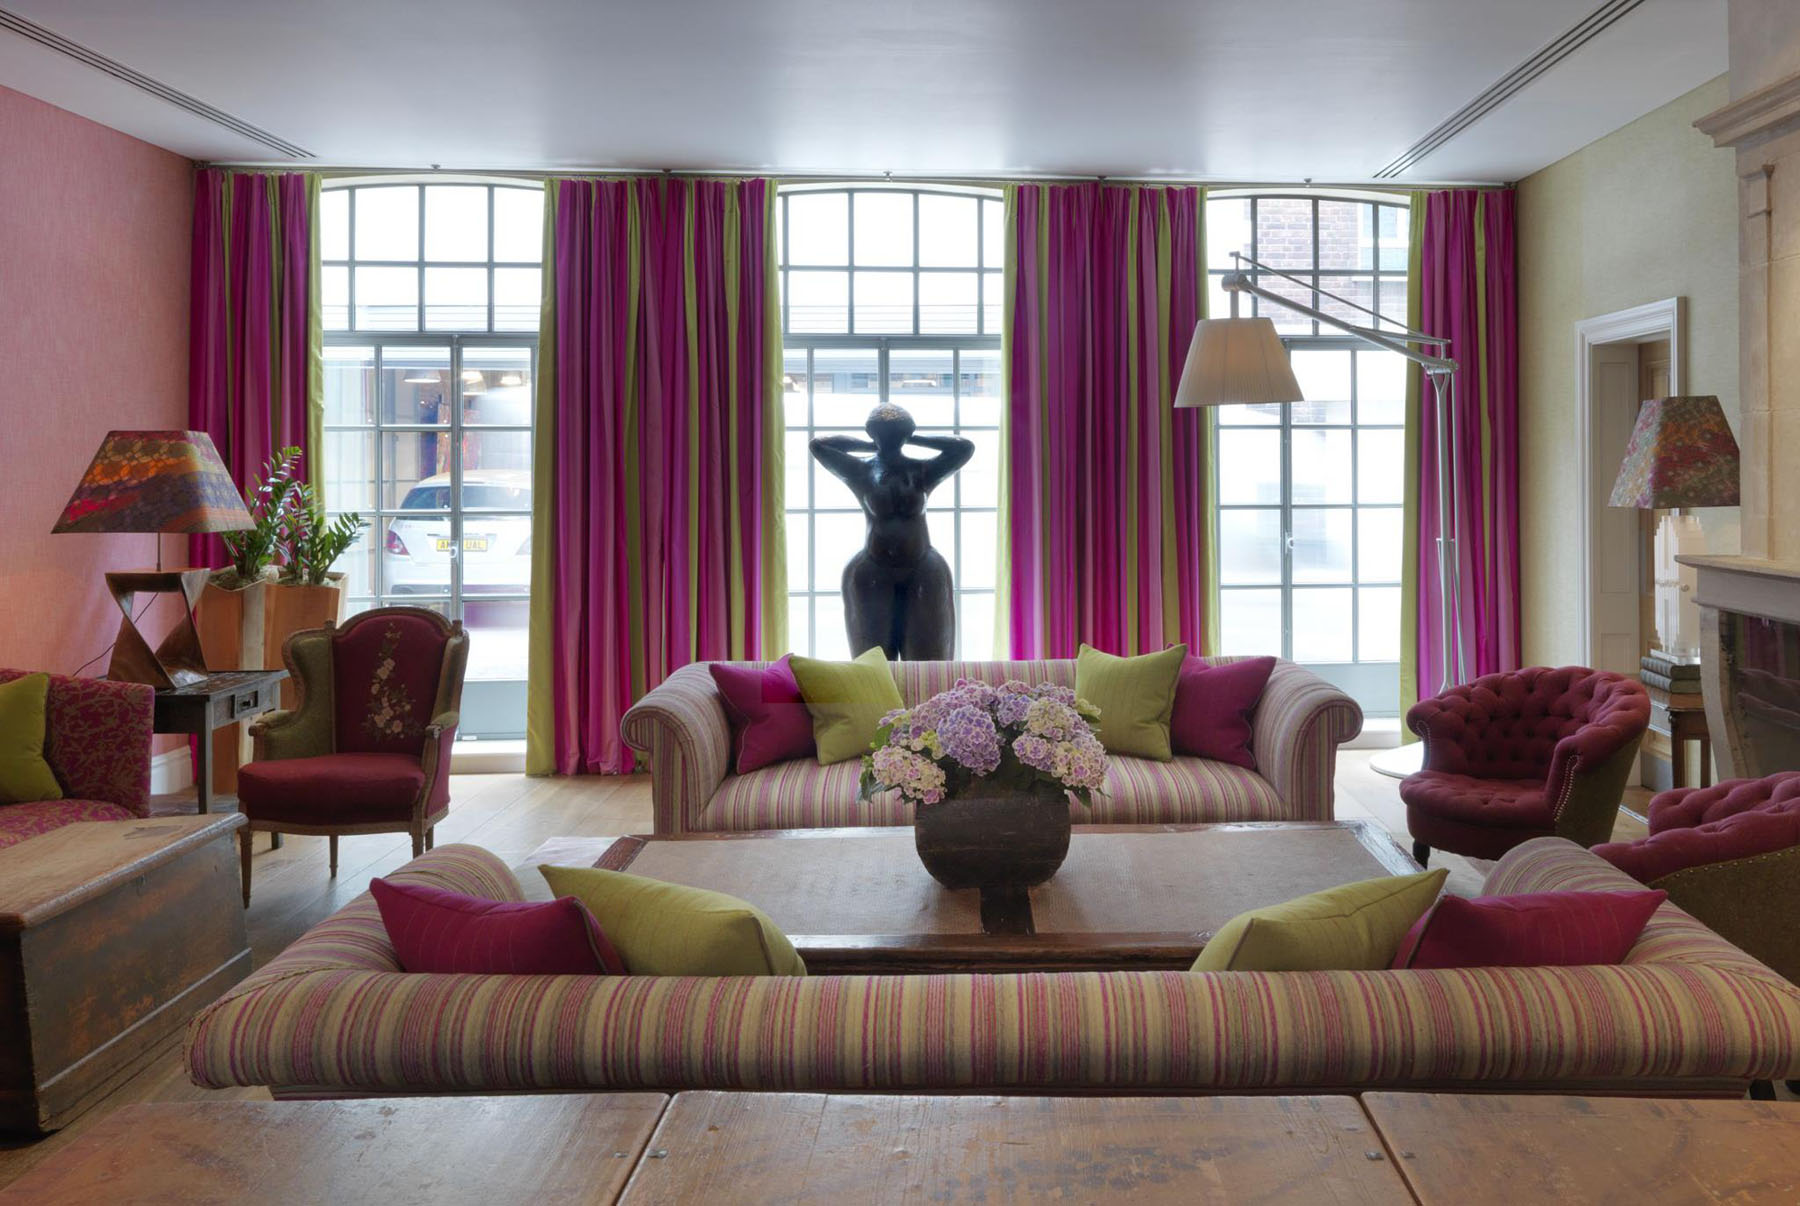 Trendy Soho Hotel London Interiors